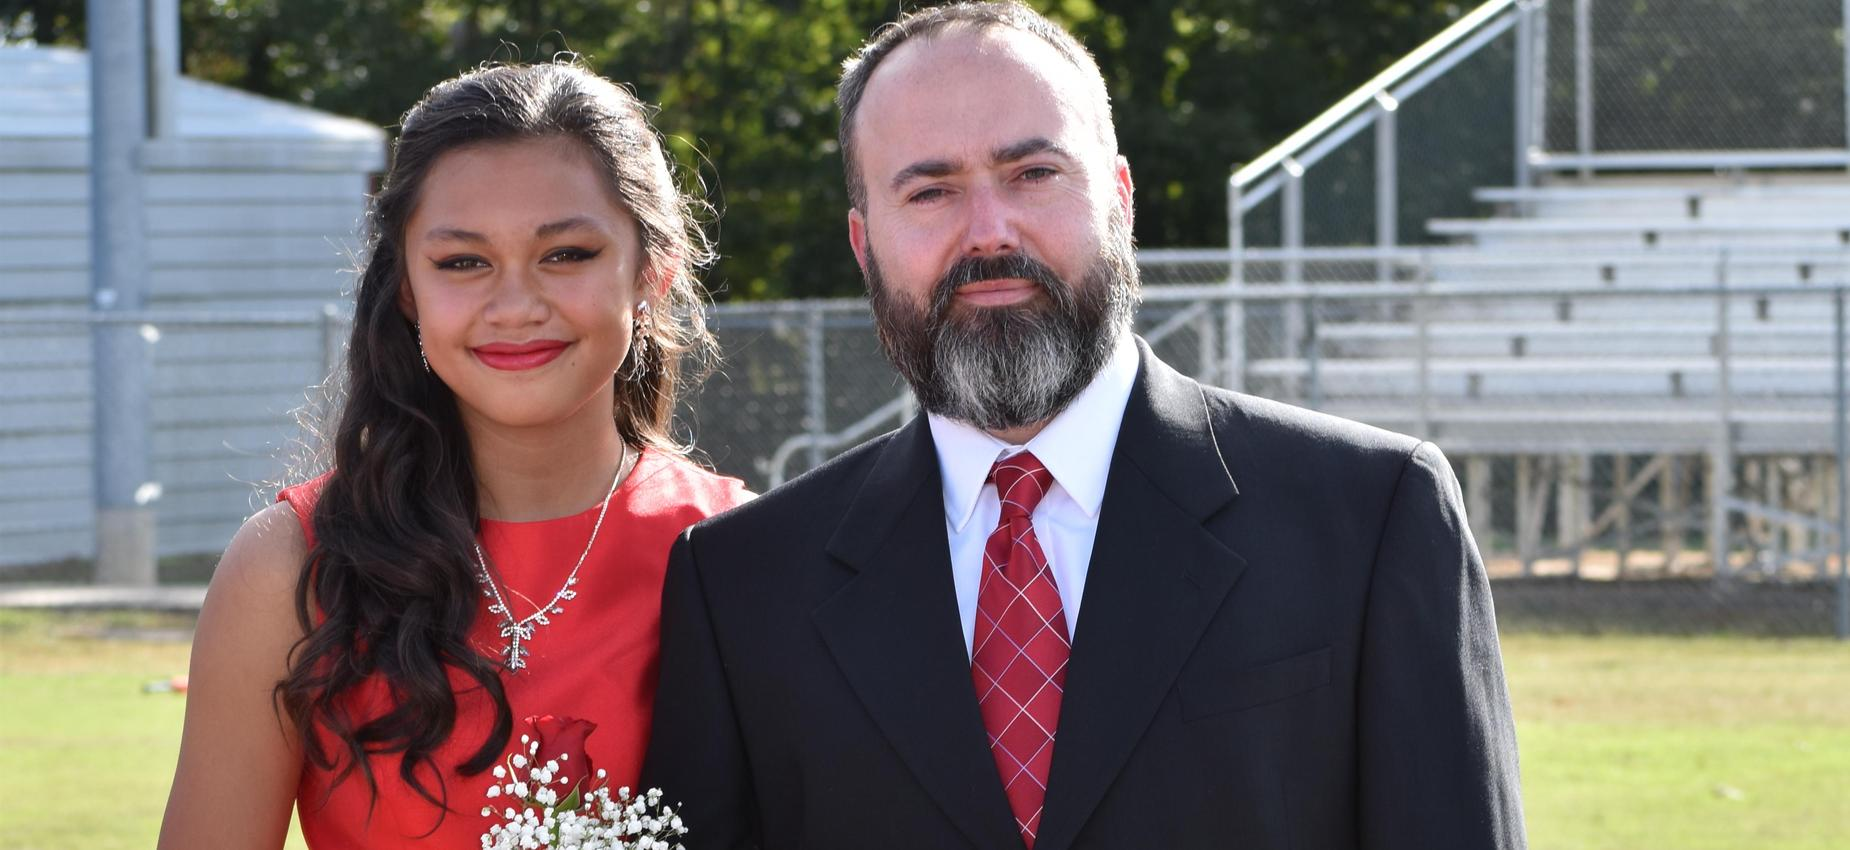 Picture of homecoming maid with escort